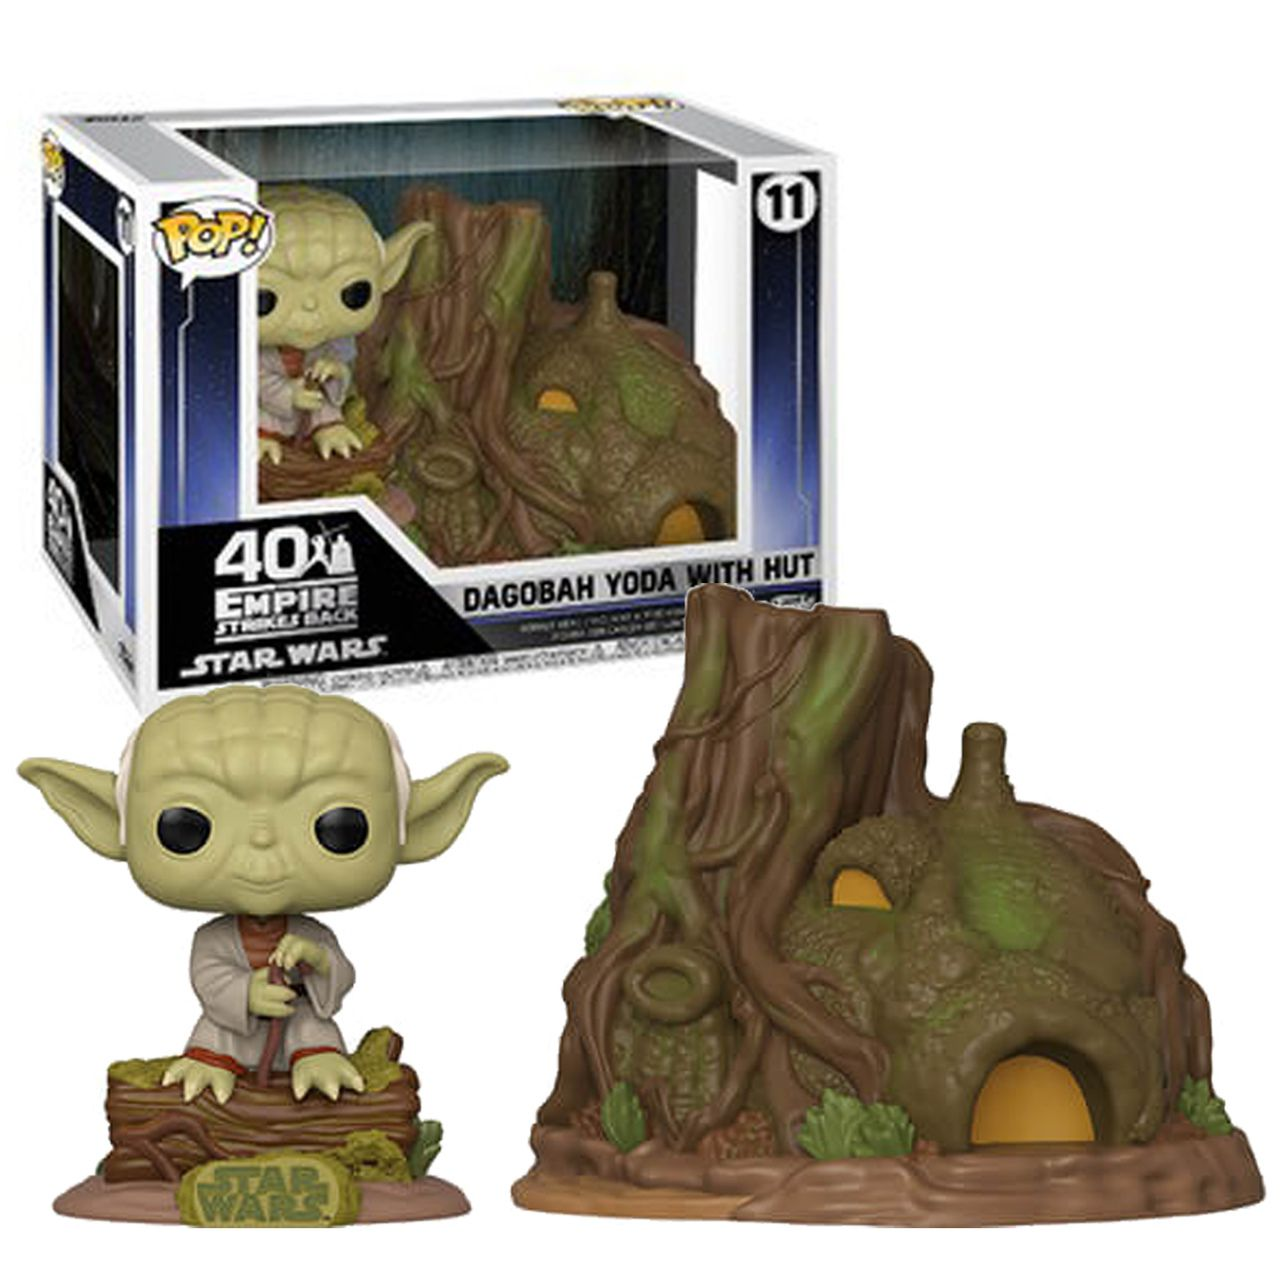 Yoda Dagobah With Hut Star Wars - Funko Pop 11